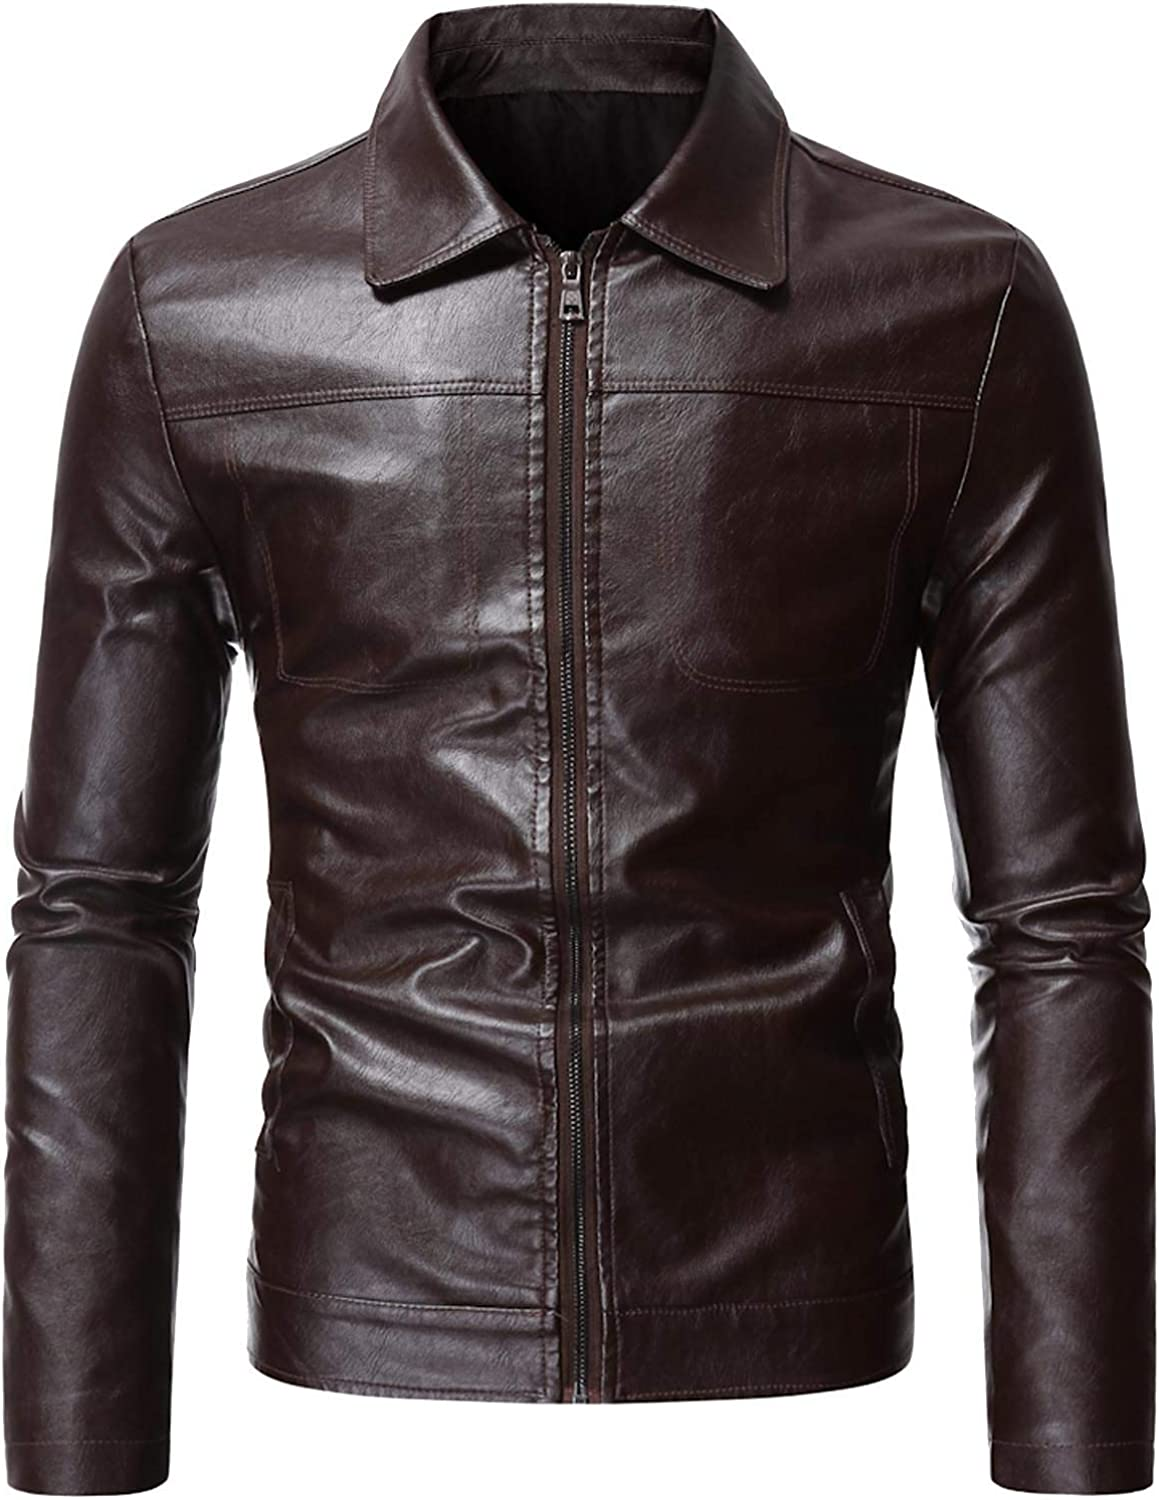 Men's Leather Houston Mall Blazer Jacket Casual Winter Slim Th 67% OFF of fixed price Blouse Fit Top